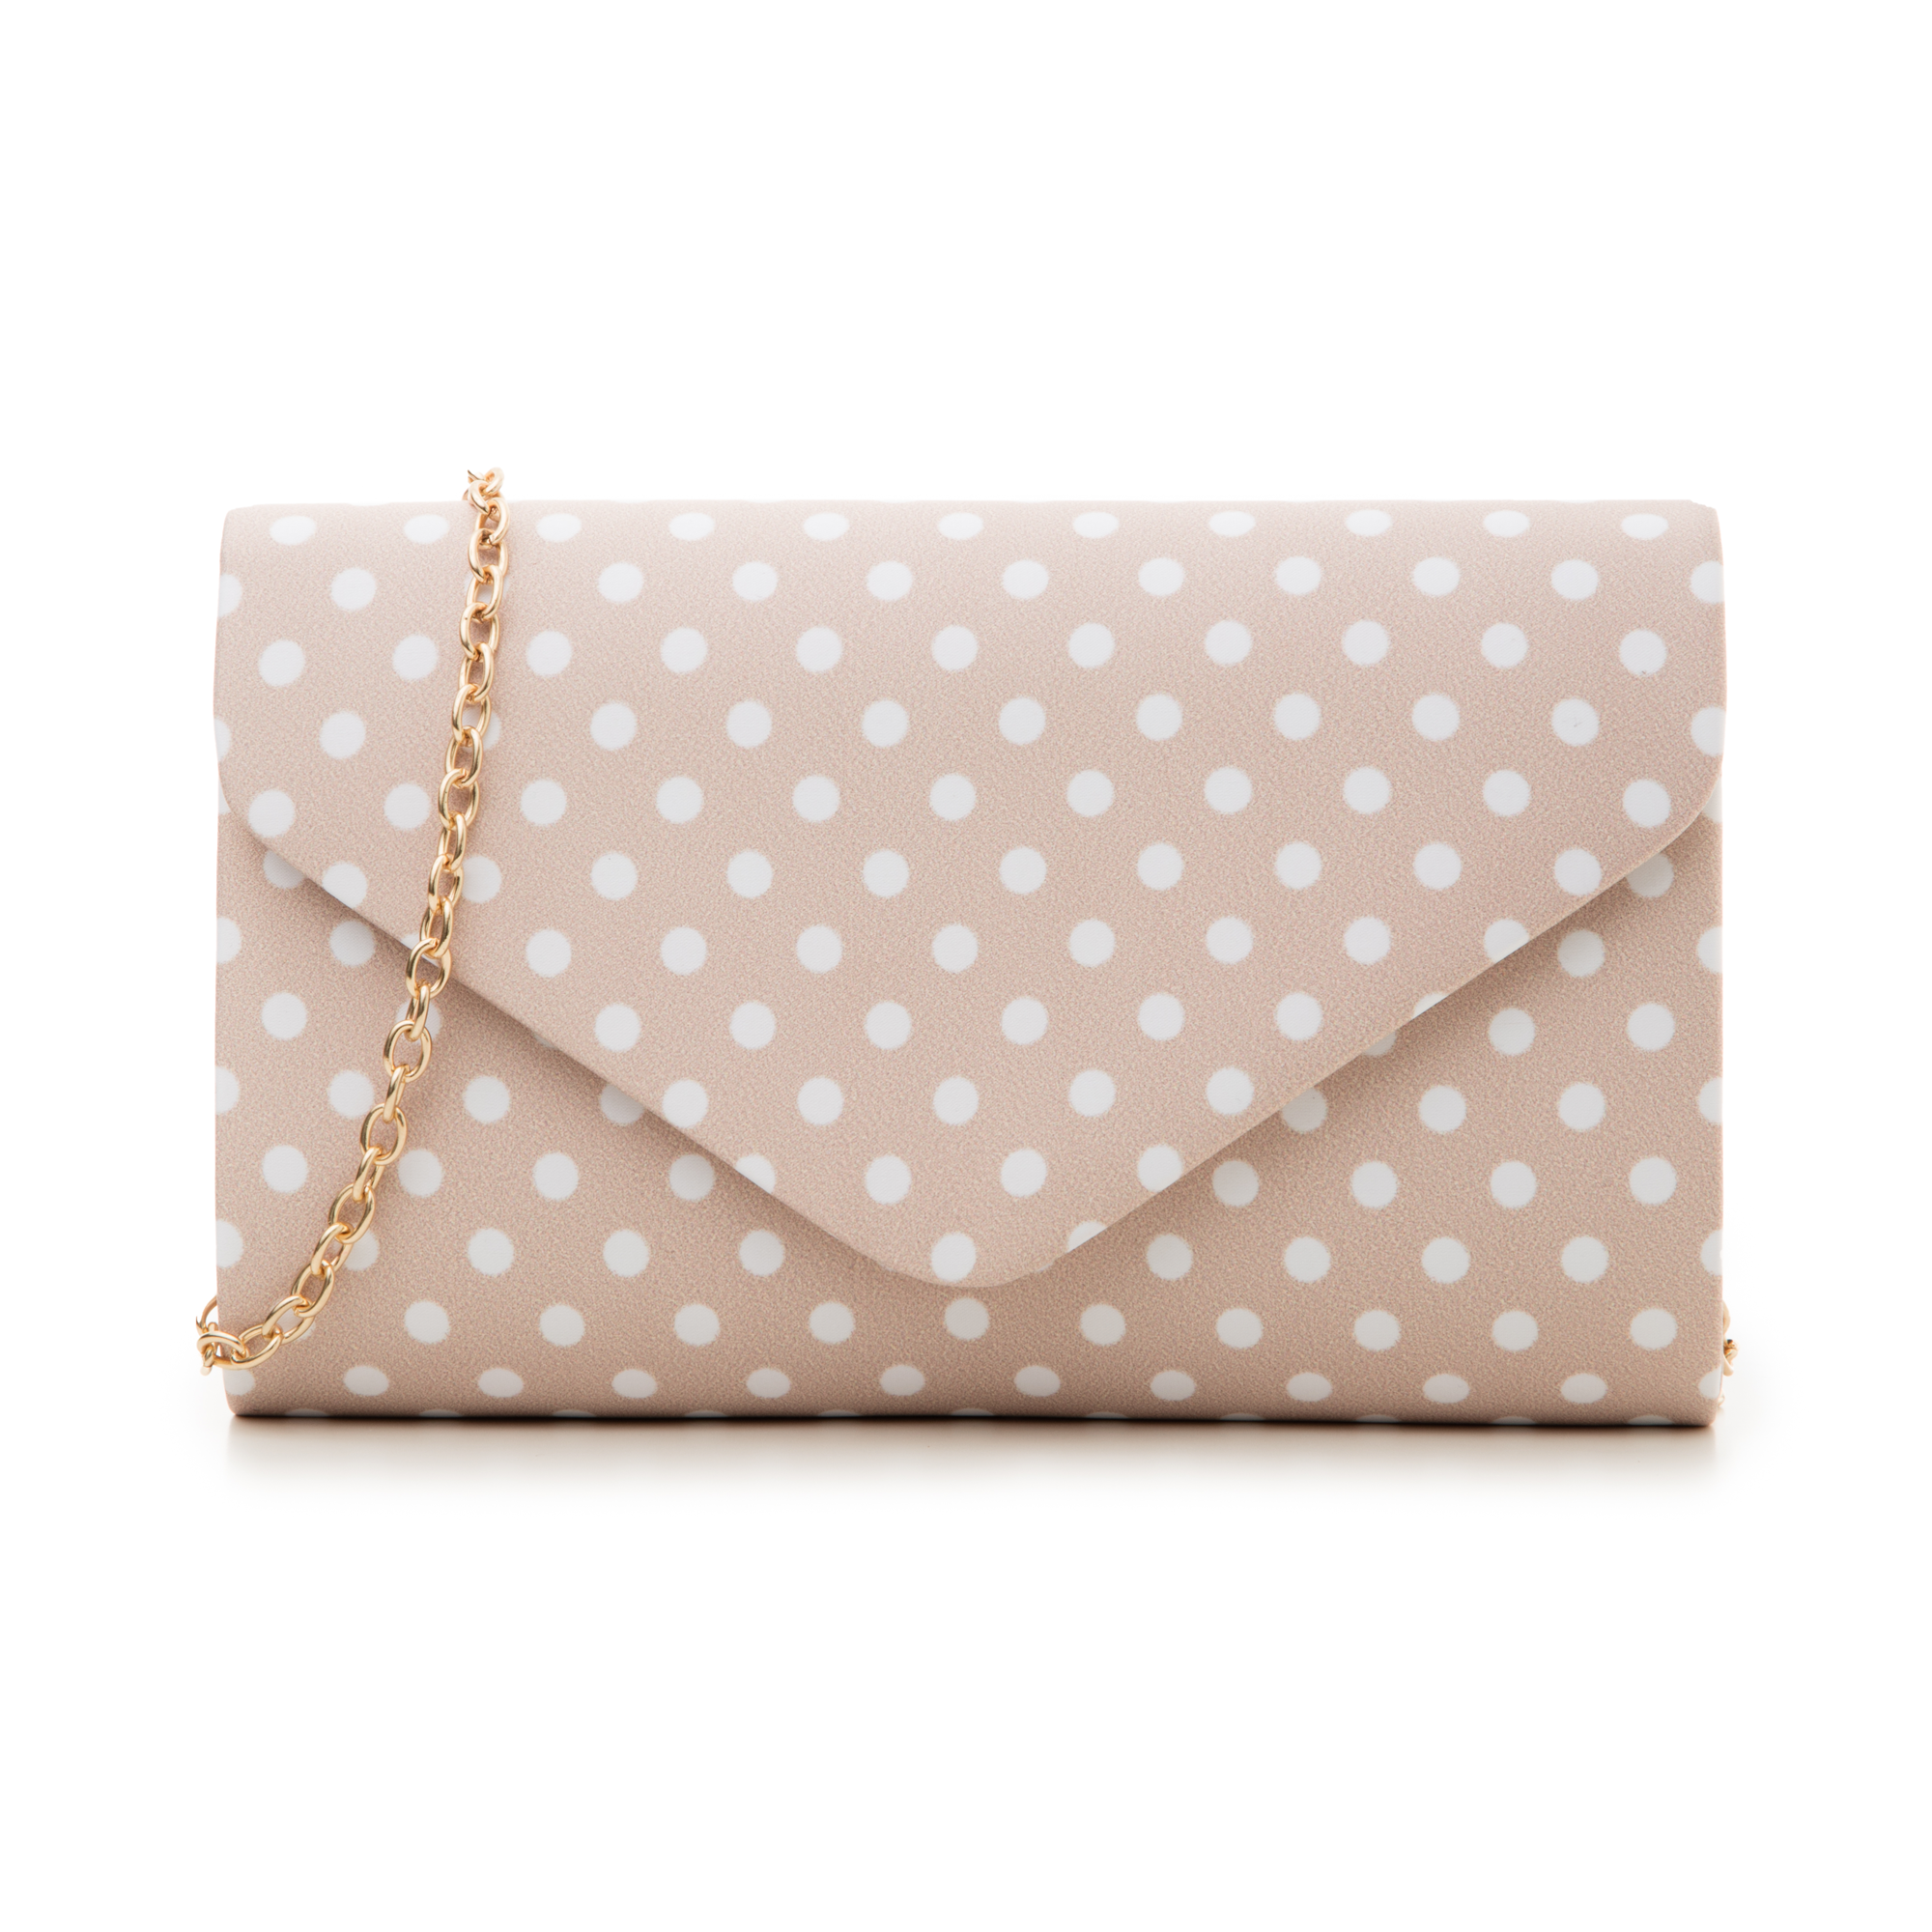 Clutch nude in raso a pois bianchi